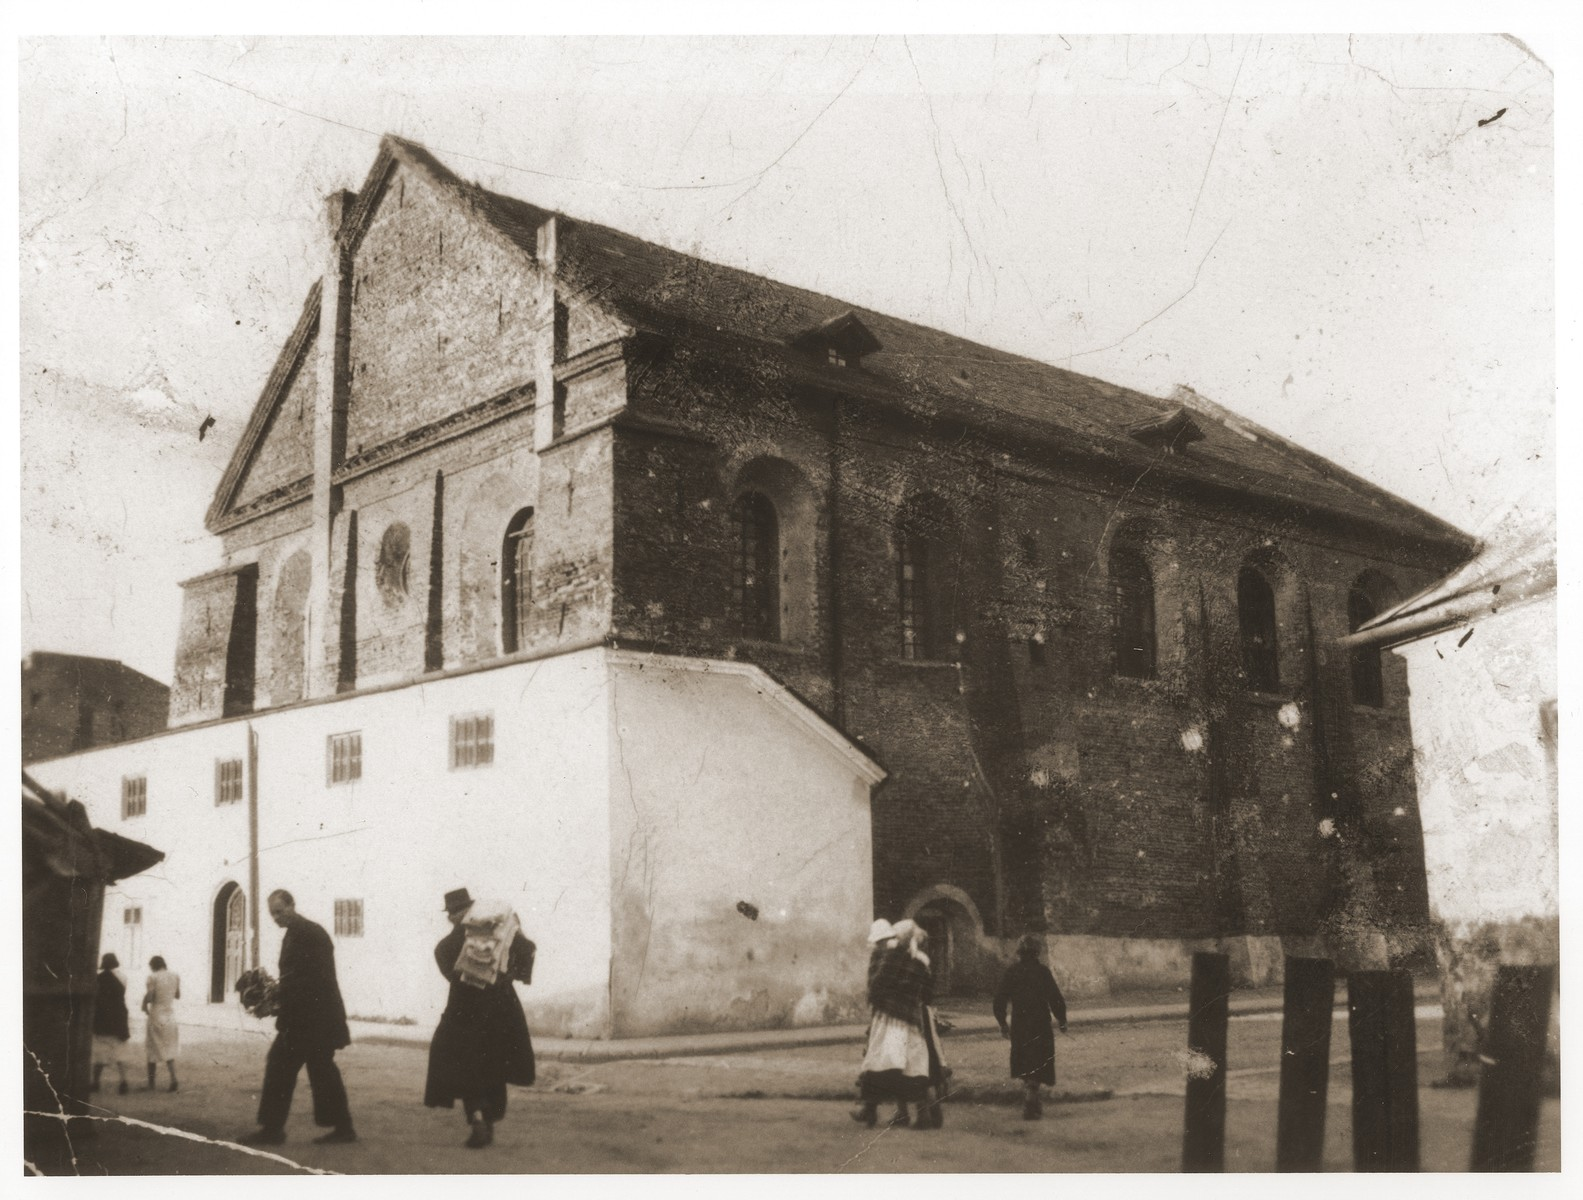 Jews walk along a street in front of the synagogue in Rzeszow, Poland.